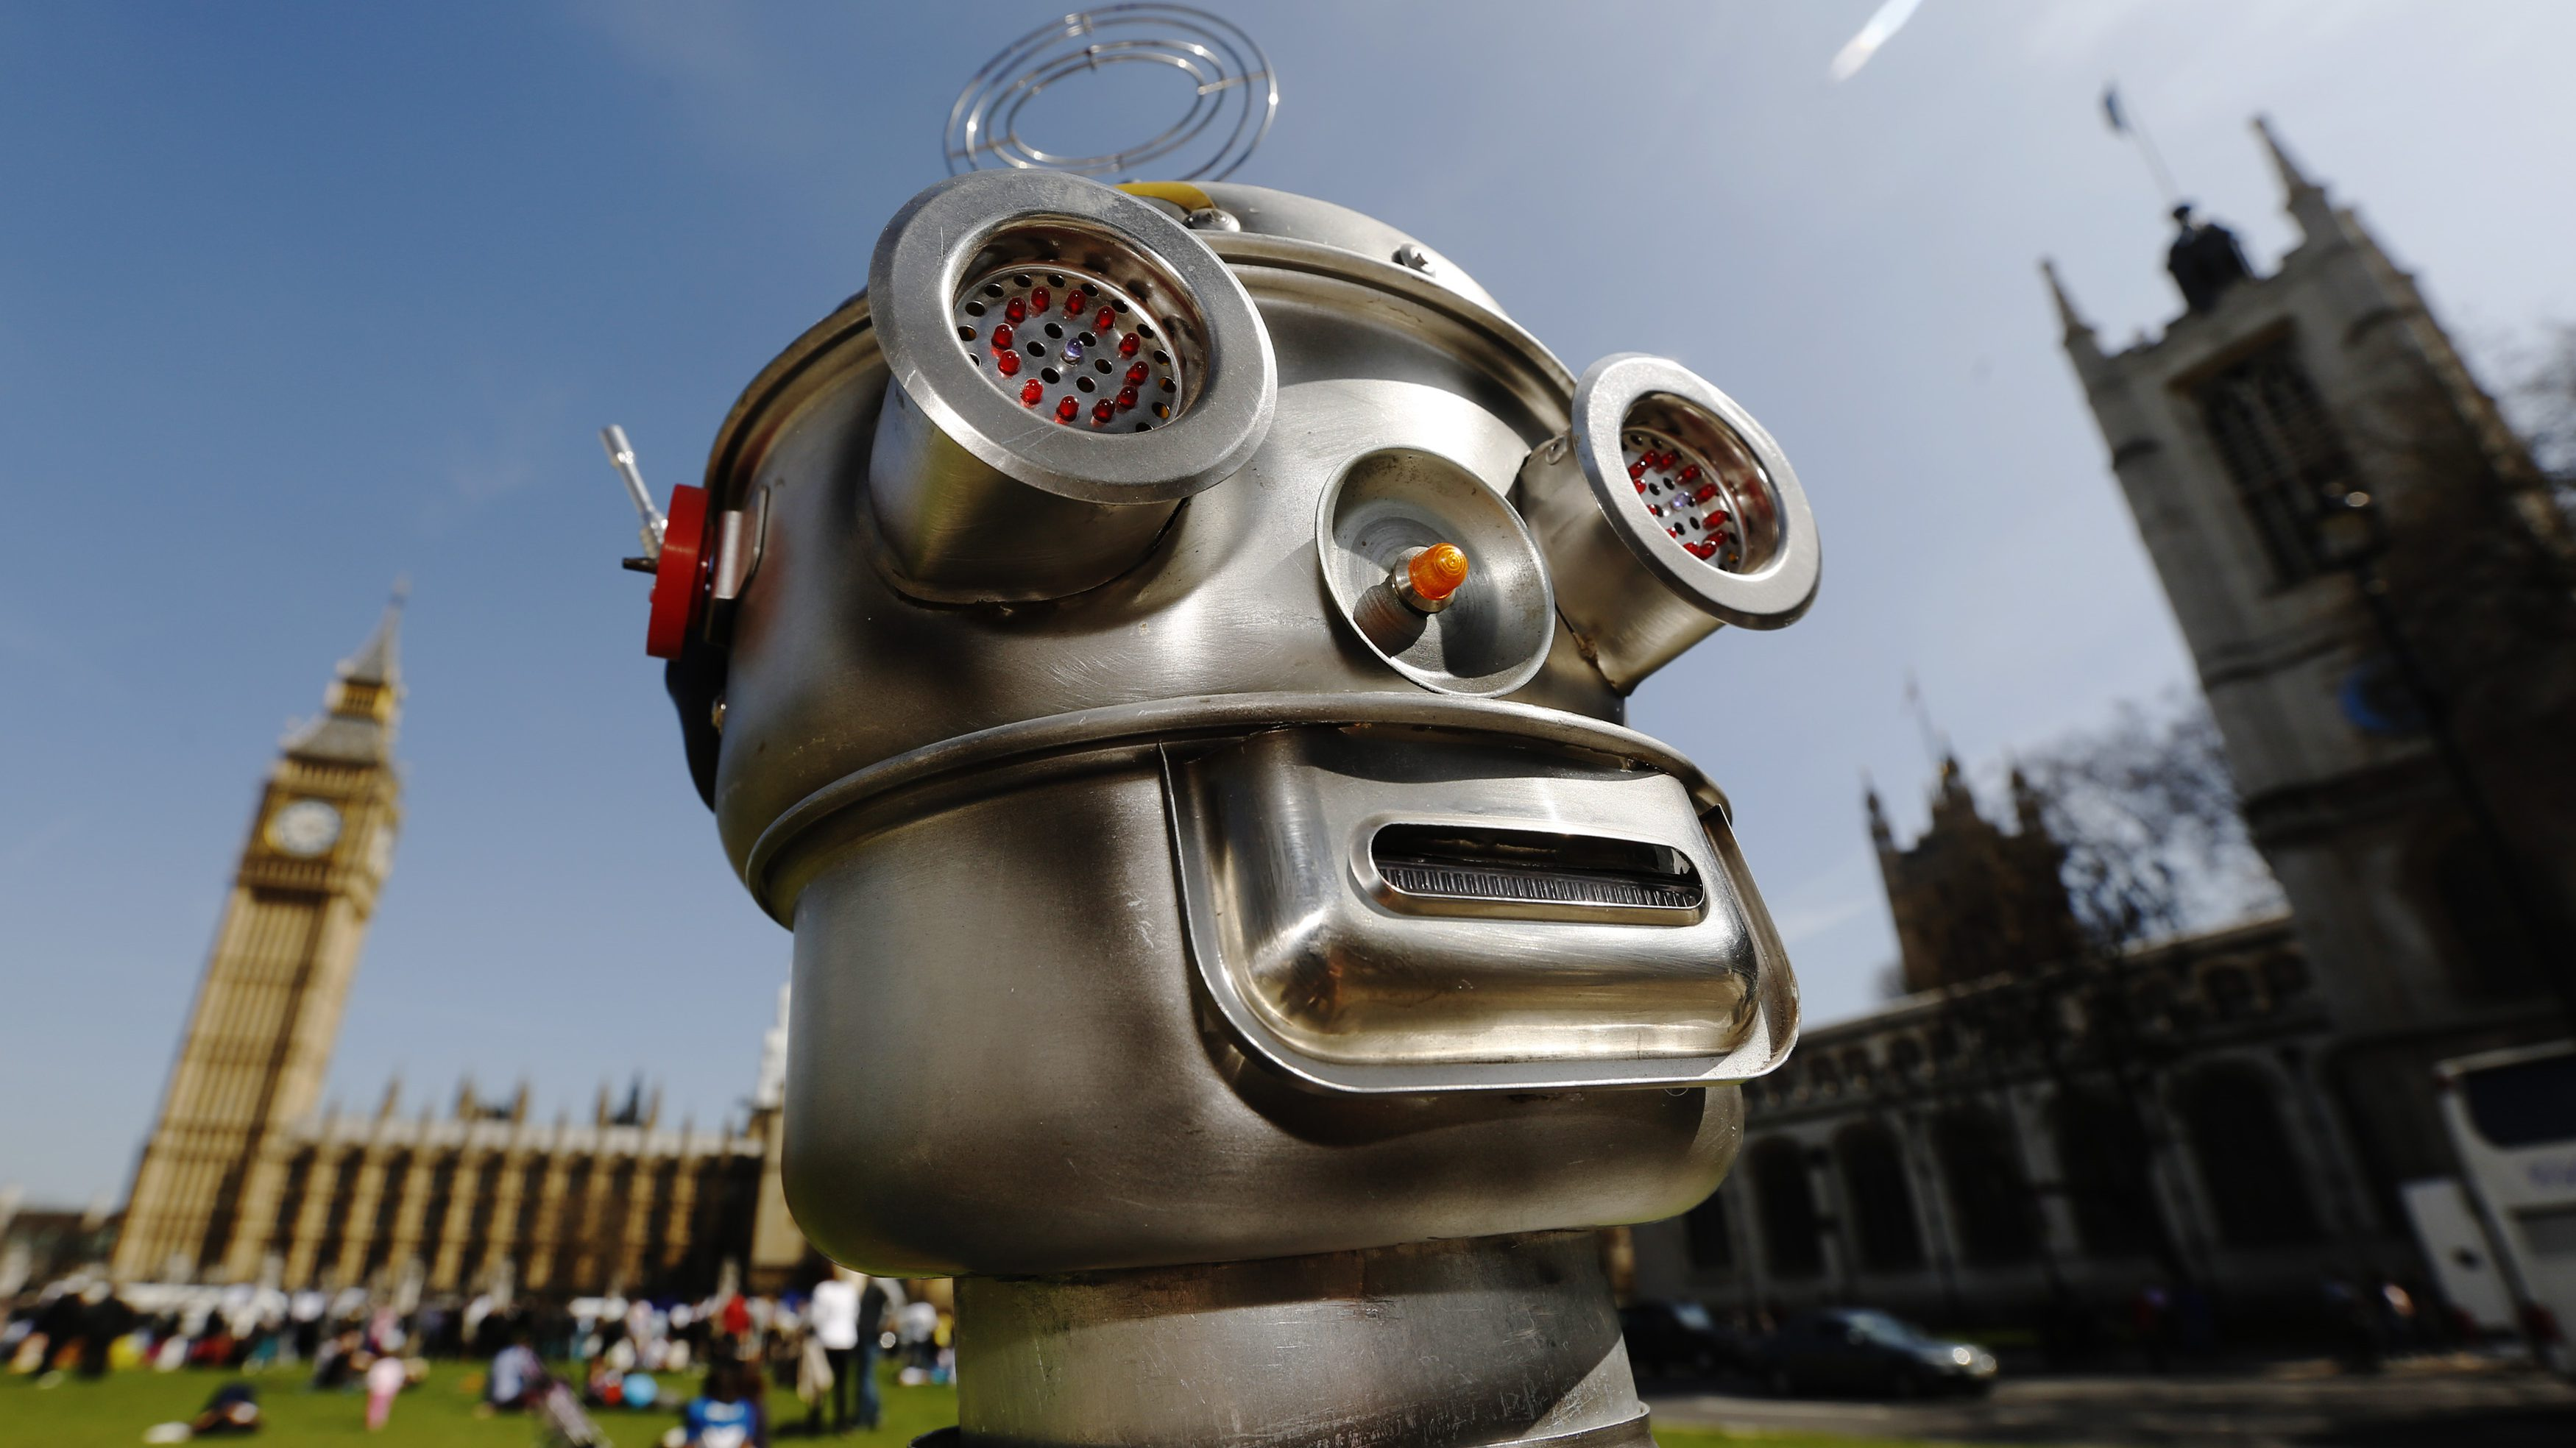 A robot is pictured in front of the Houses of Parliament and Westminster Abbey as part of the Campaign to Stop Killer Robots in London April 23, 2013. Robots with the ability to attack targets without any human intervention must be banned before they are even developed for use in a battlefield, campaigners urged on Tuesday.